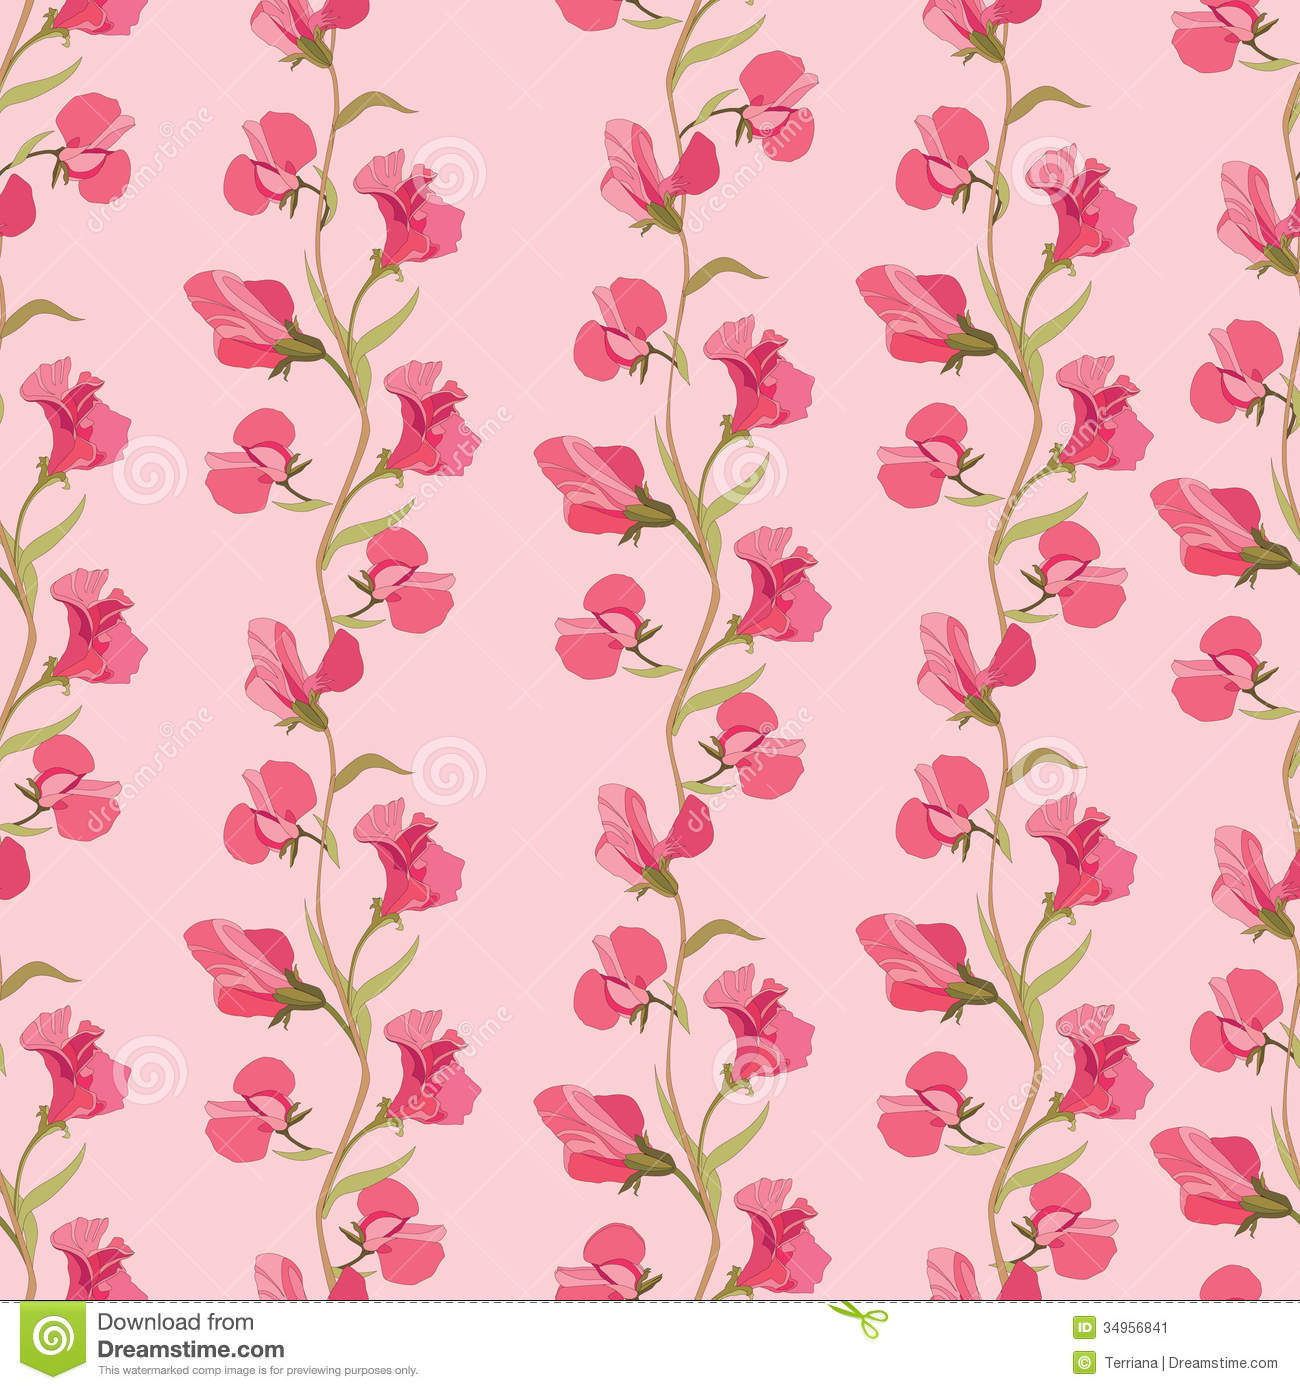 seamless floral background - photo #47